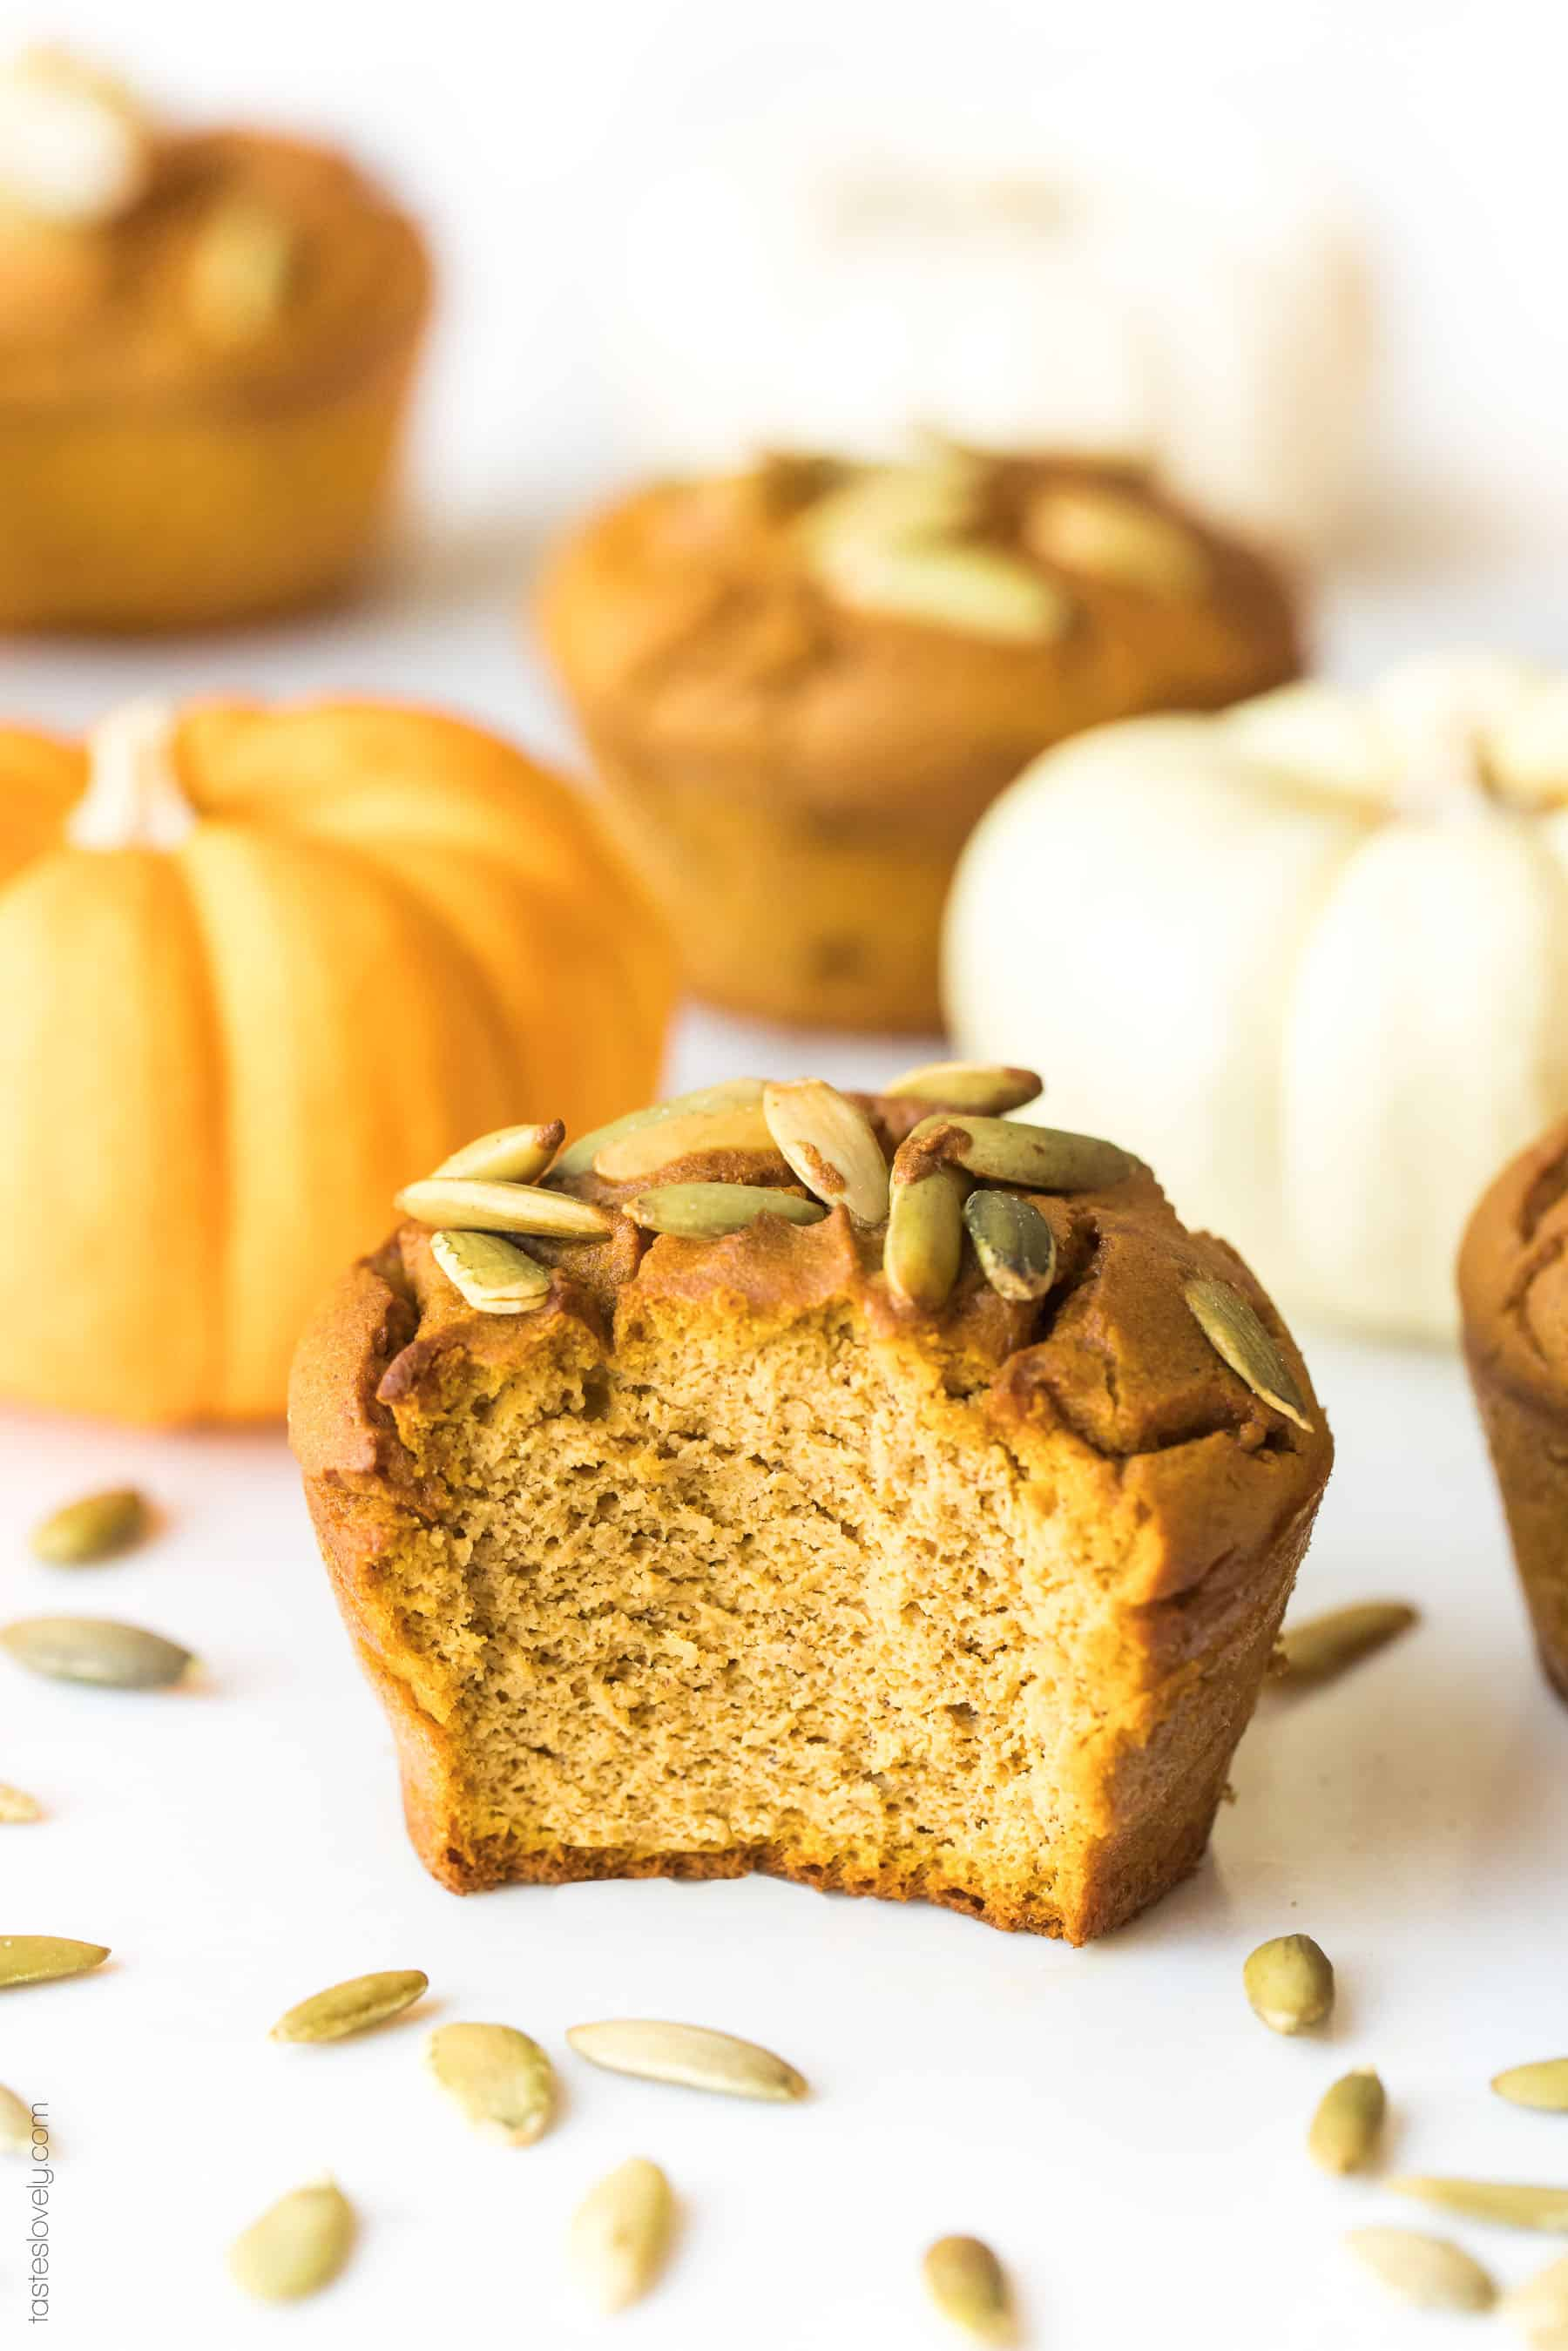 A paleo pumpkin muffin with a bite taken out of it with small pumpkins in the background